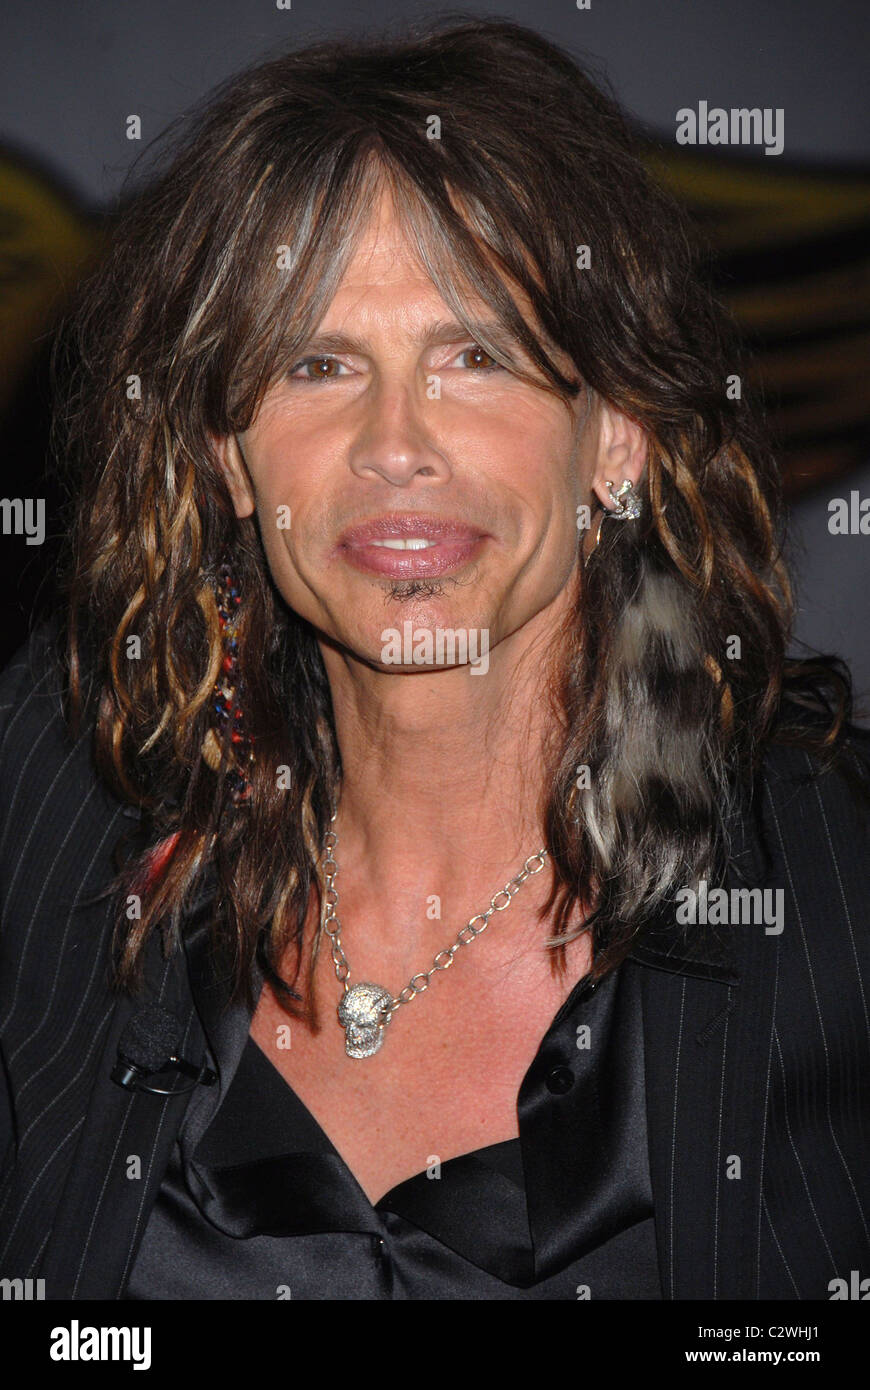 Steven Tyler Aerosmith launch the new video game 'Guitar Hero: Aerosmith' at Hard Rock cafe New York City, - Stock Image